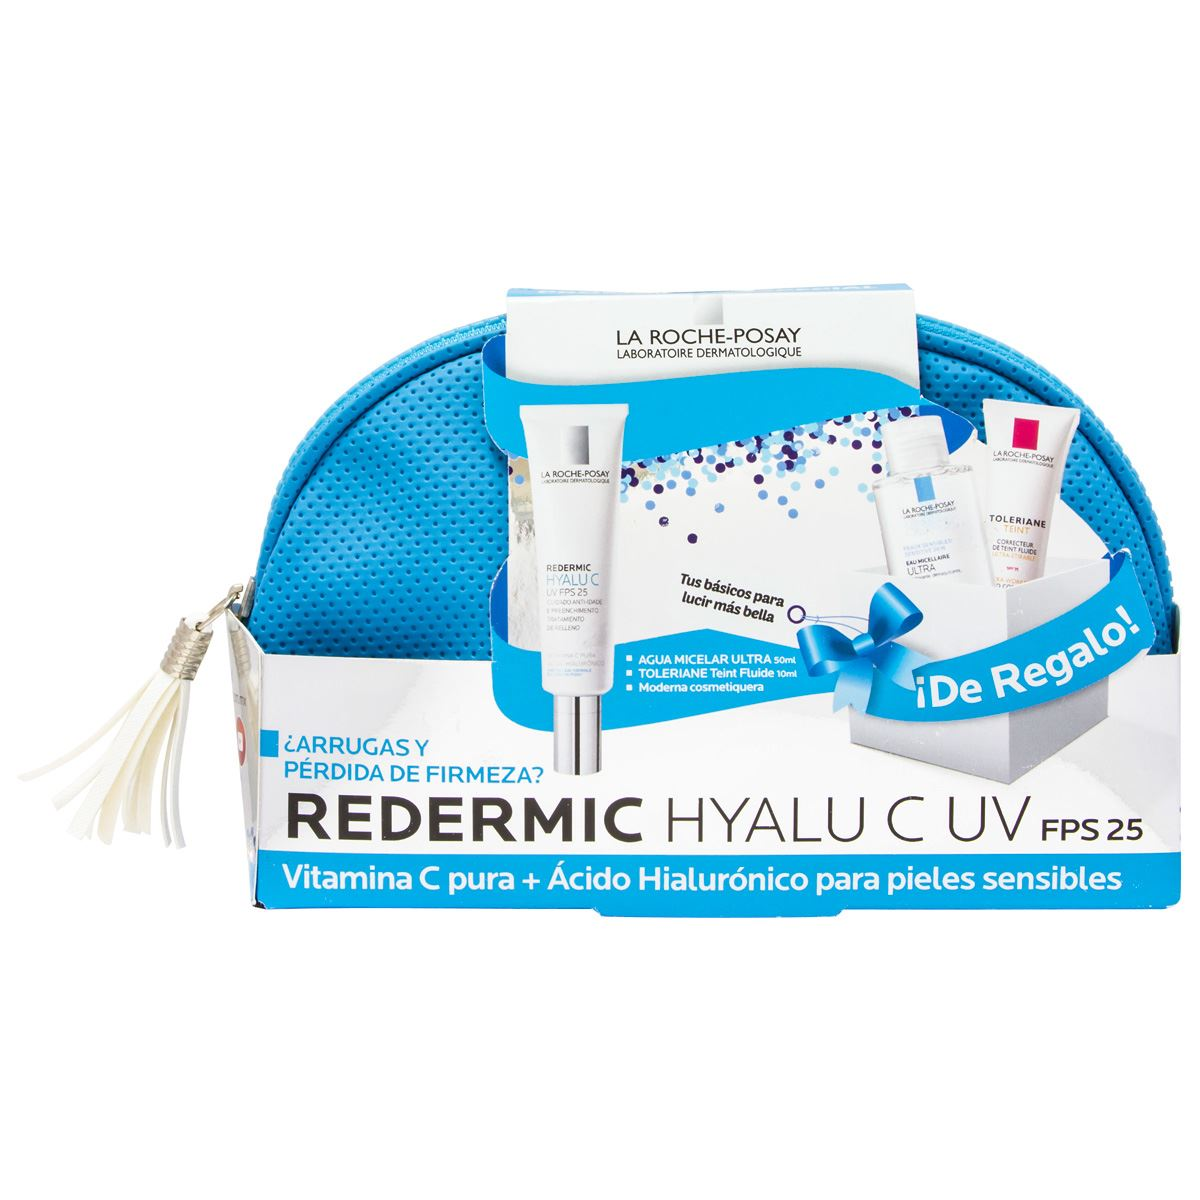 Pack redermic hyalu c uv fps 25 - con vitamina c + acido hyaluronico para pieles sensibles  - Sanborns